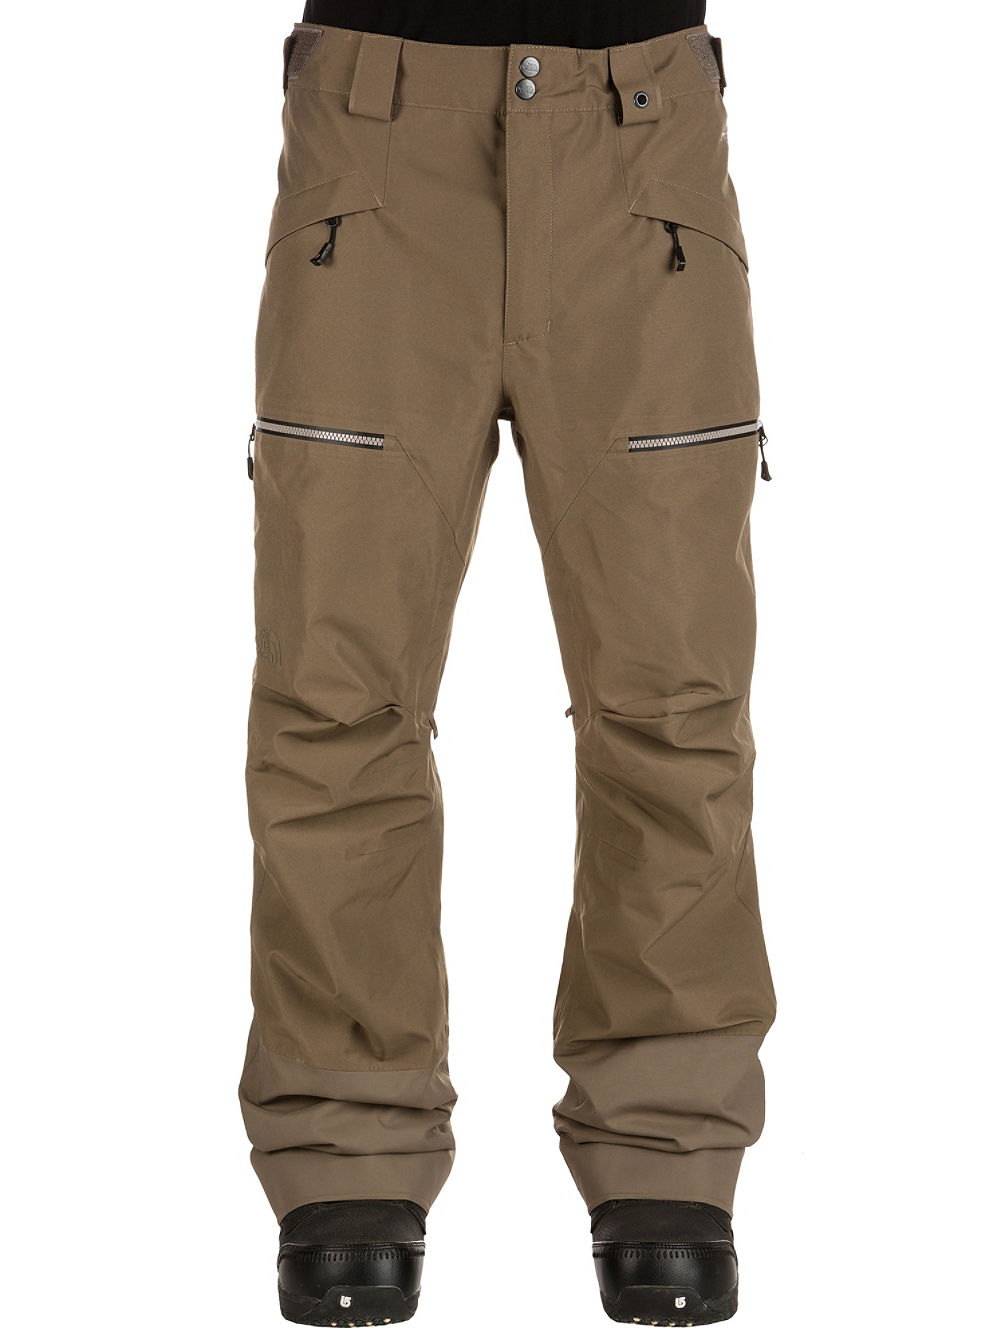 15457a445088 Buy THE NORTH FACE Powder Guide Pants online at Blue Tomato